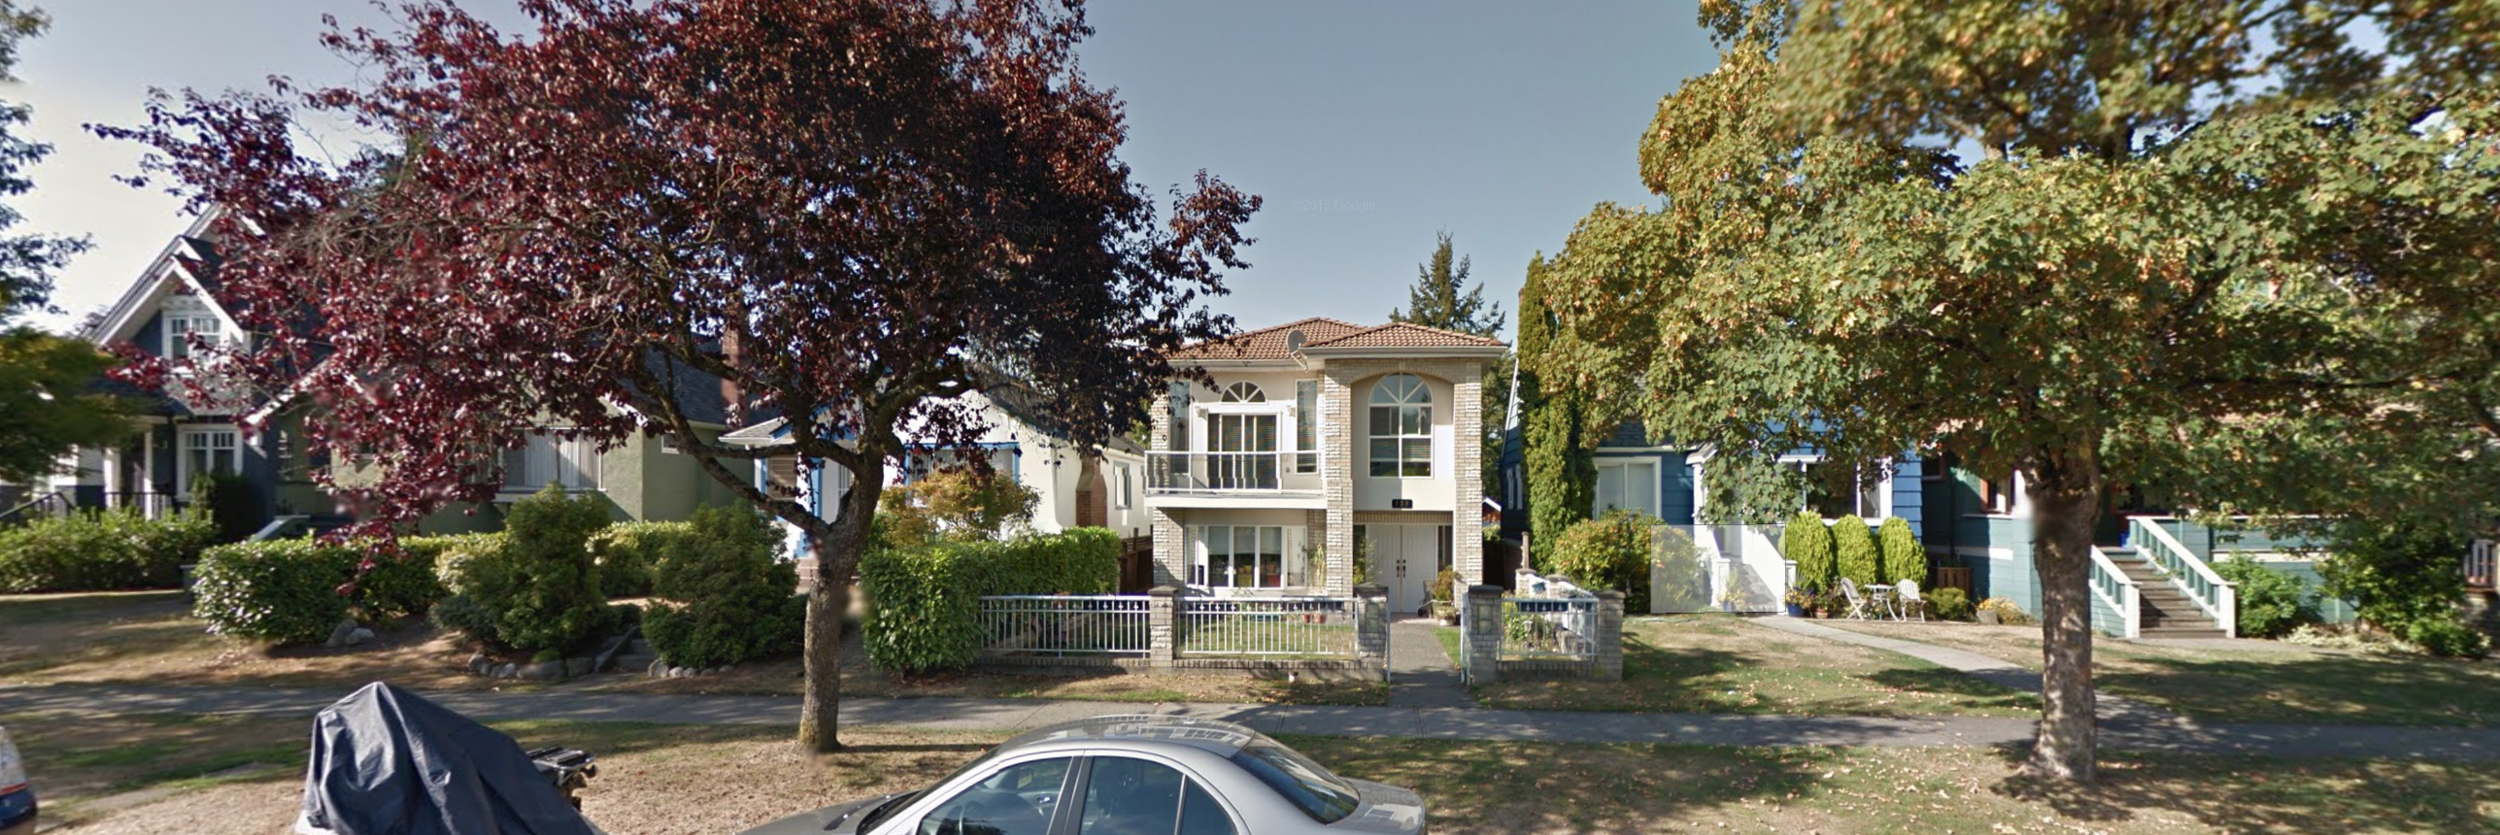 A typical Vancouver front yard, ~24' deep. Image: Google